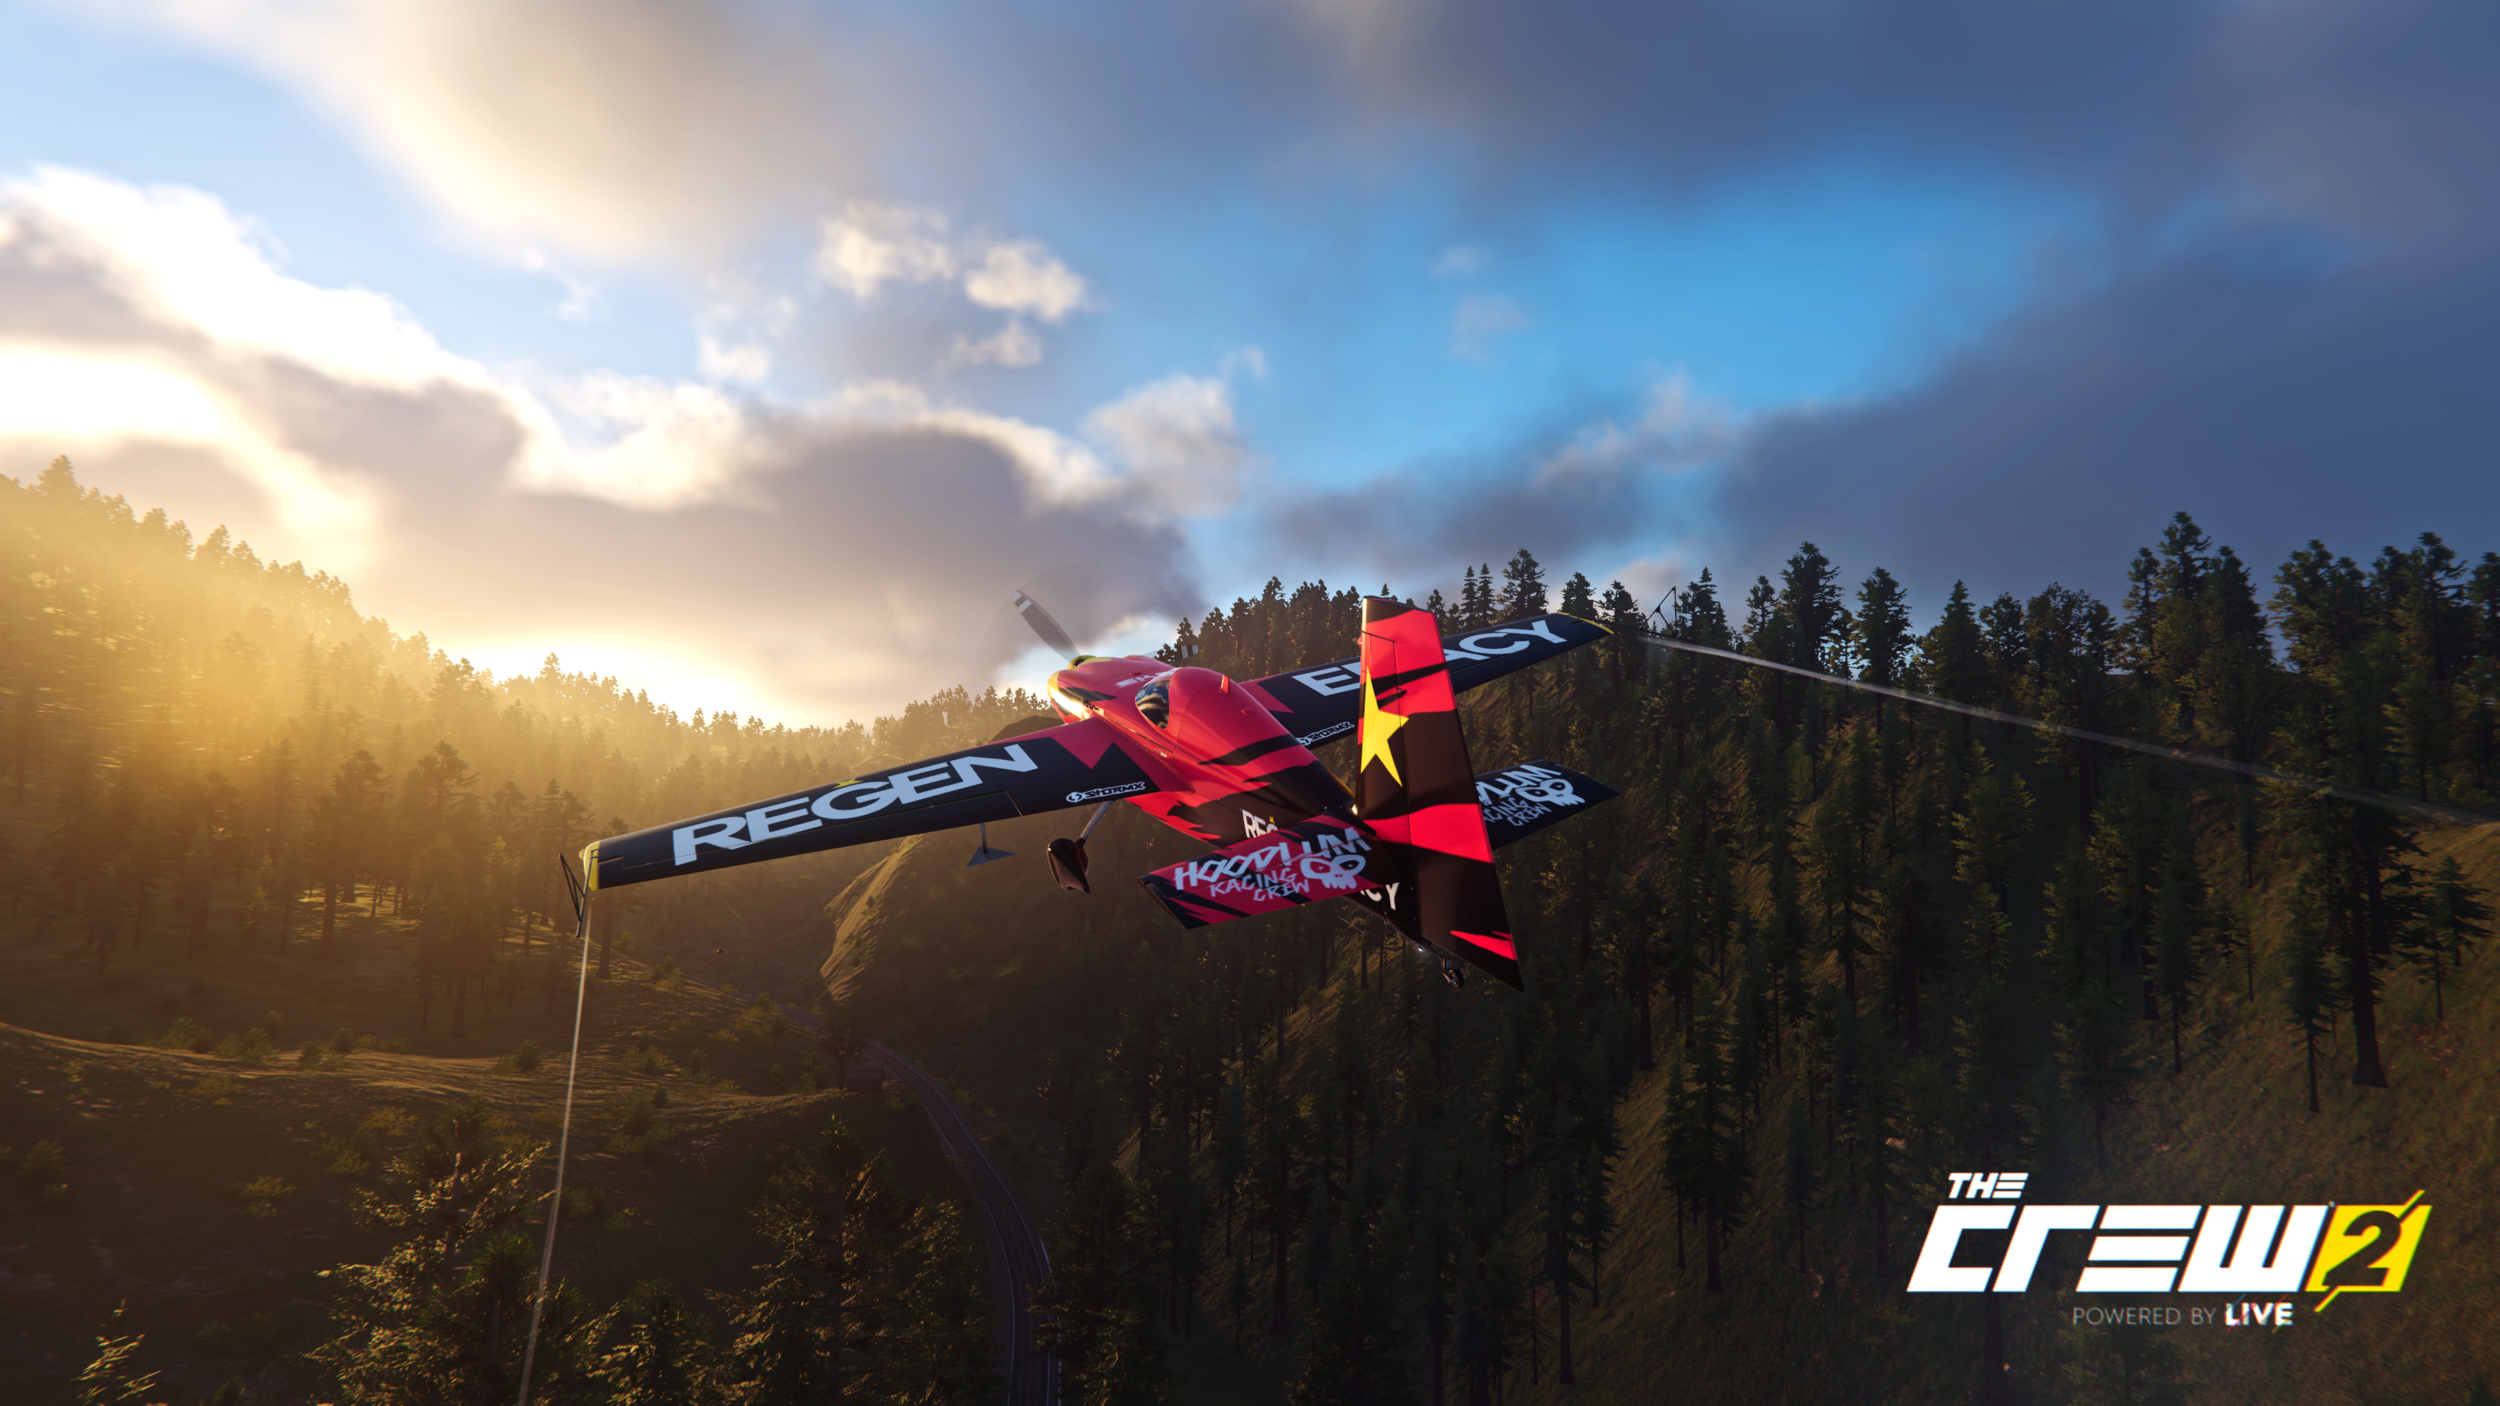 TheCrew2_2019-04-11_20-38-29.png